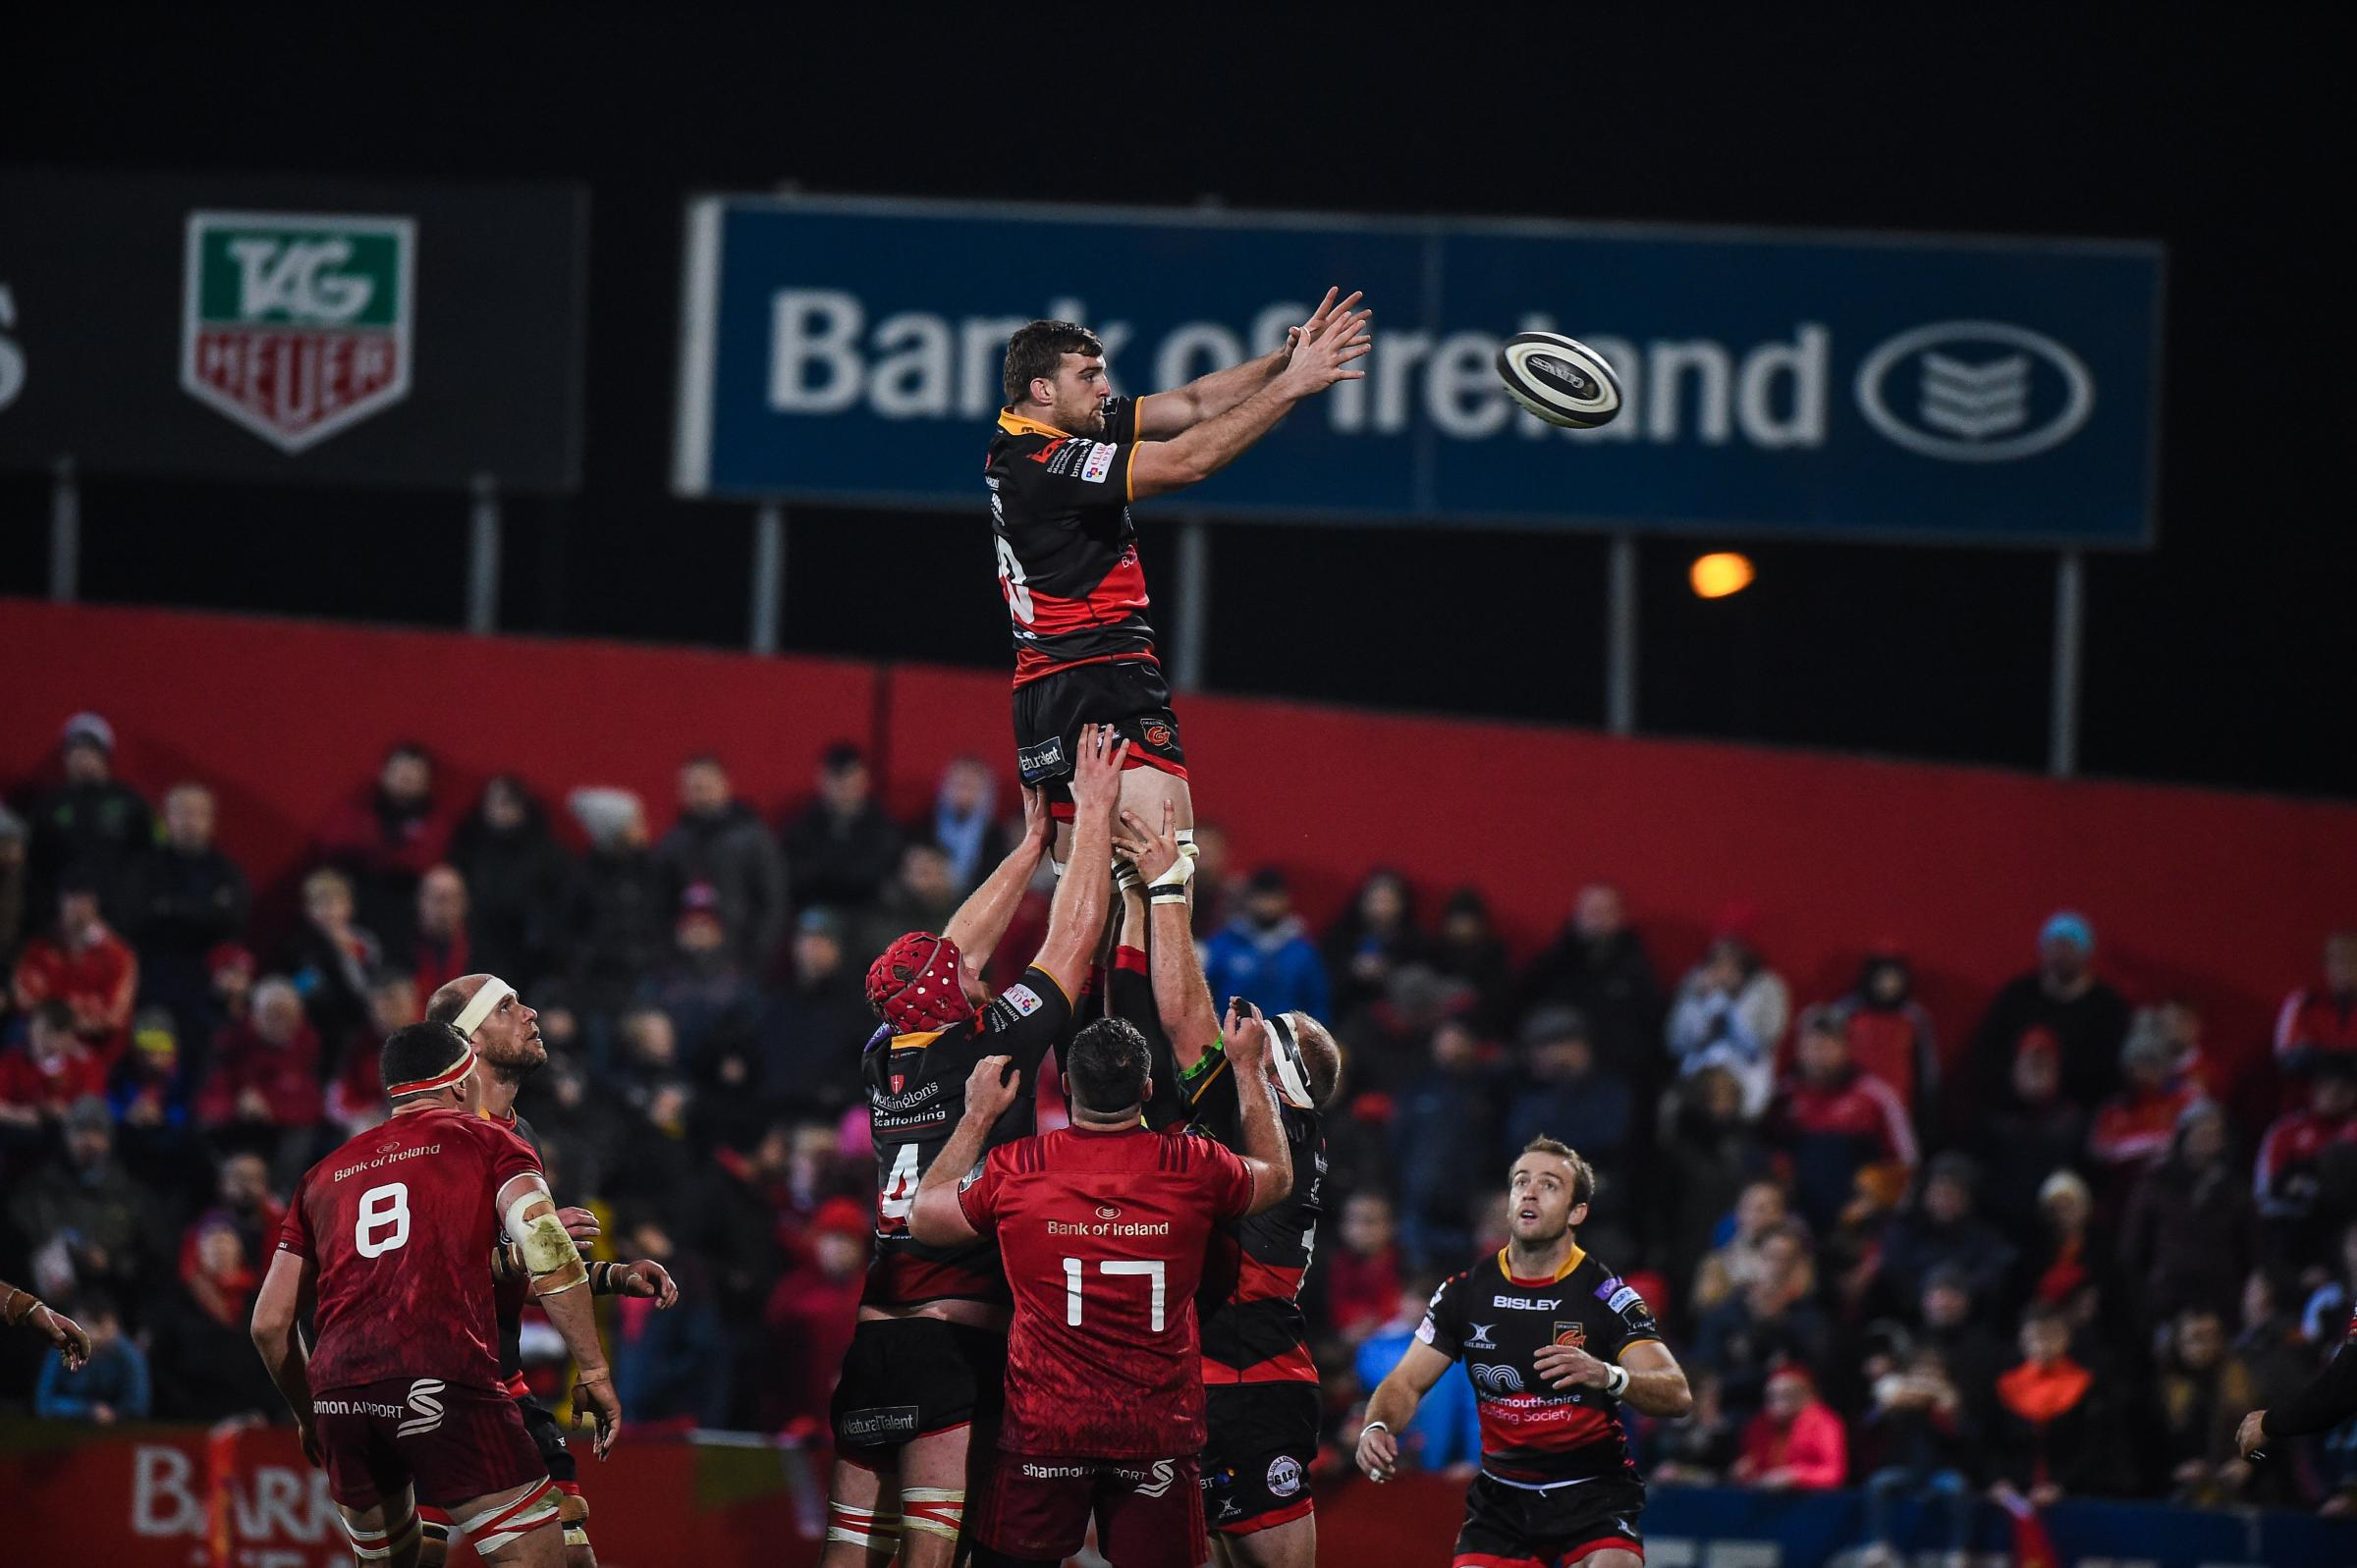 OPPORTUNITY KNOCKS: Flanker Ben Roach claims the ball on his Dragons debut at Munster